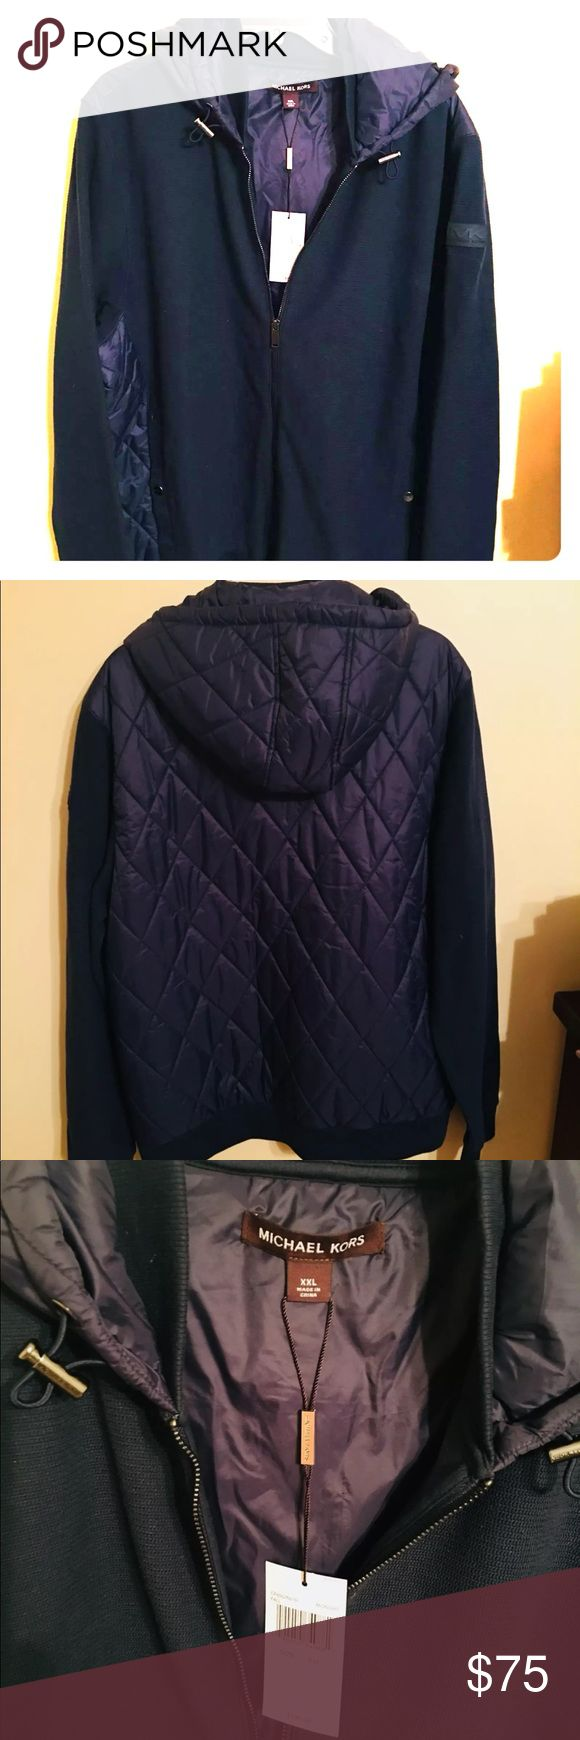 Michale Kors mens jacket NWT never worn Mens zip up jacket Navy blue Hood and quilted back MK branded logo on left sleeve Retails $195 Michael Kors Jackets & Coats